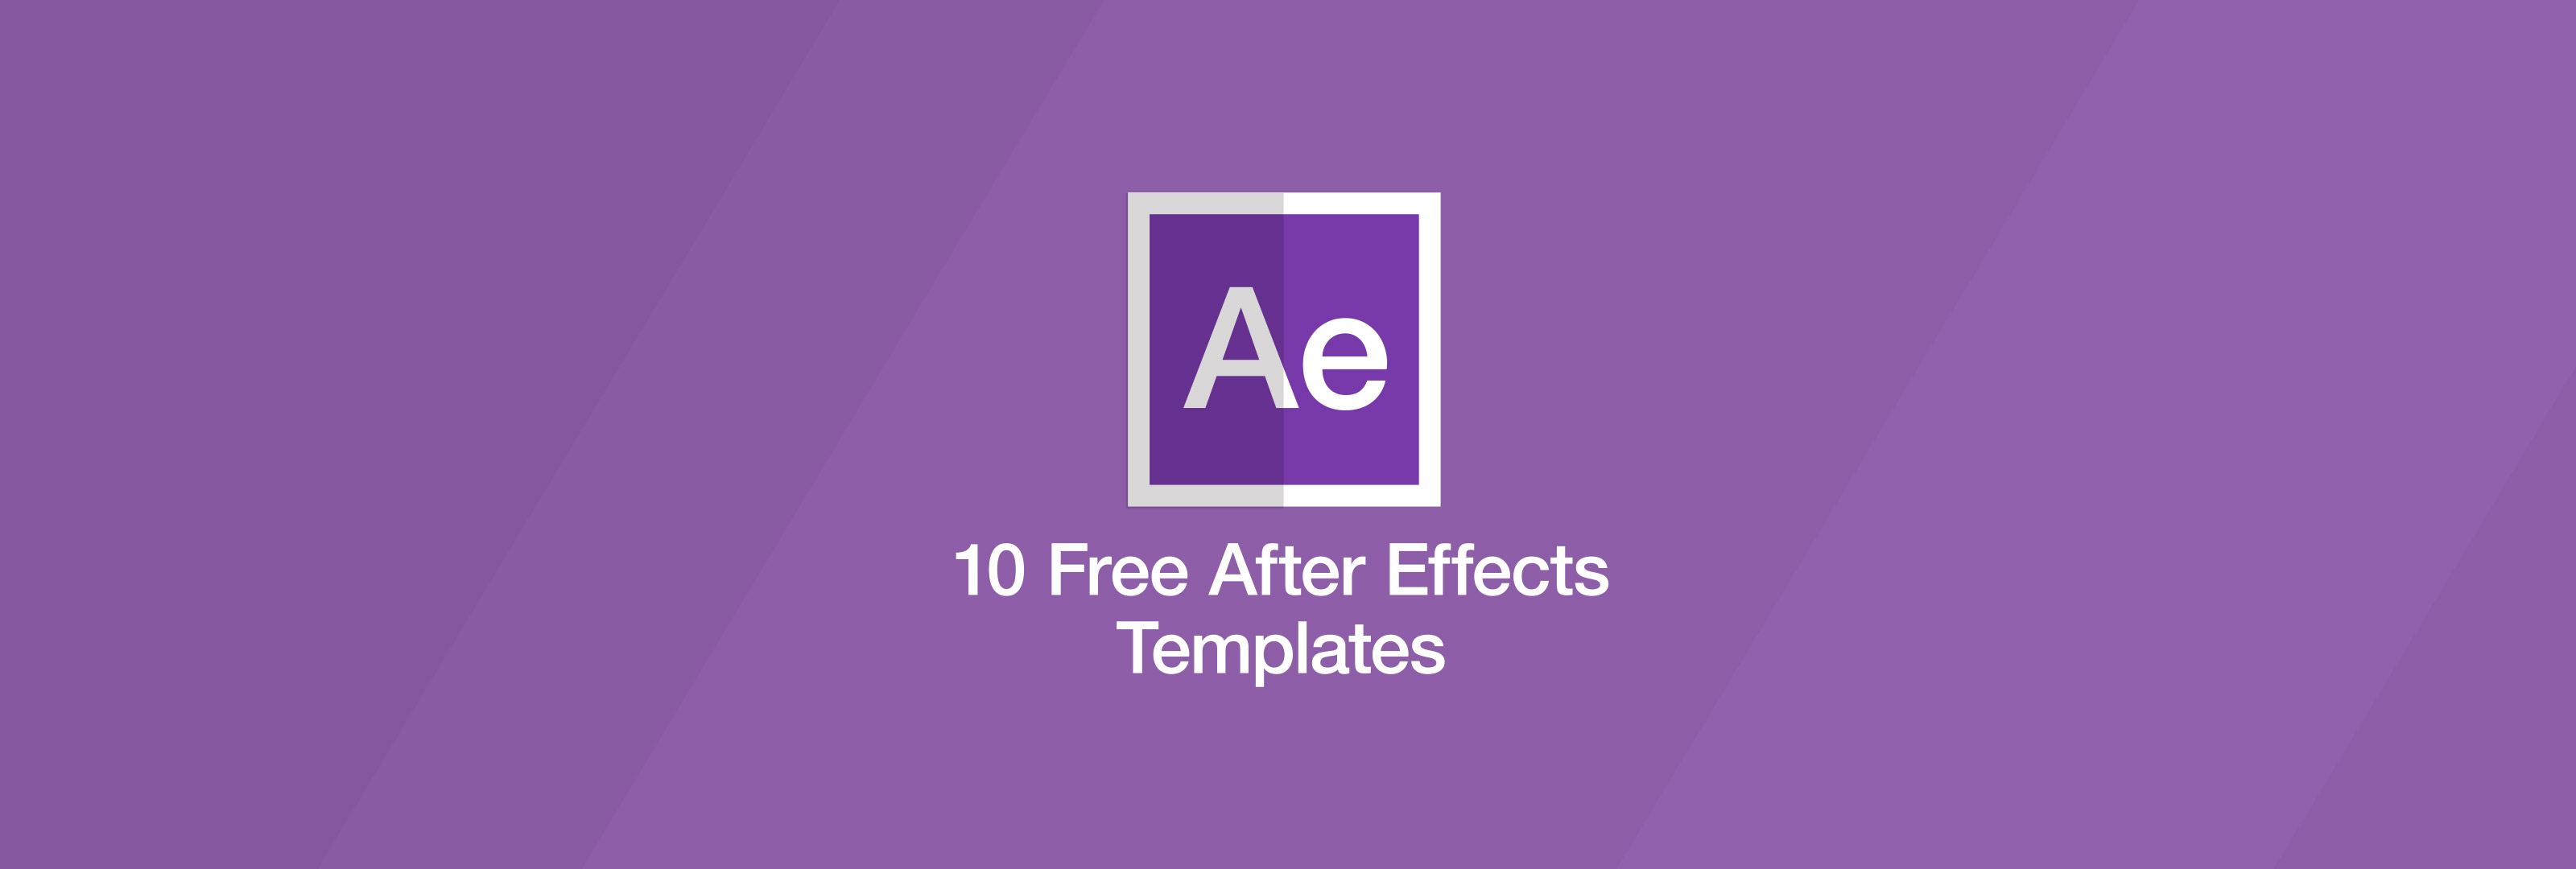 10 Free After Effects Templates | Motion Array